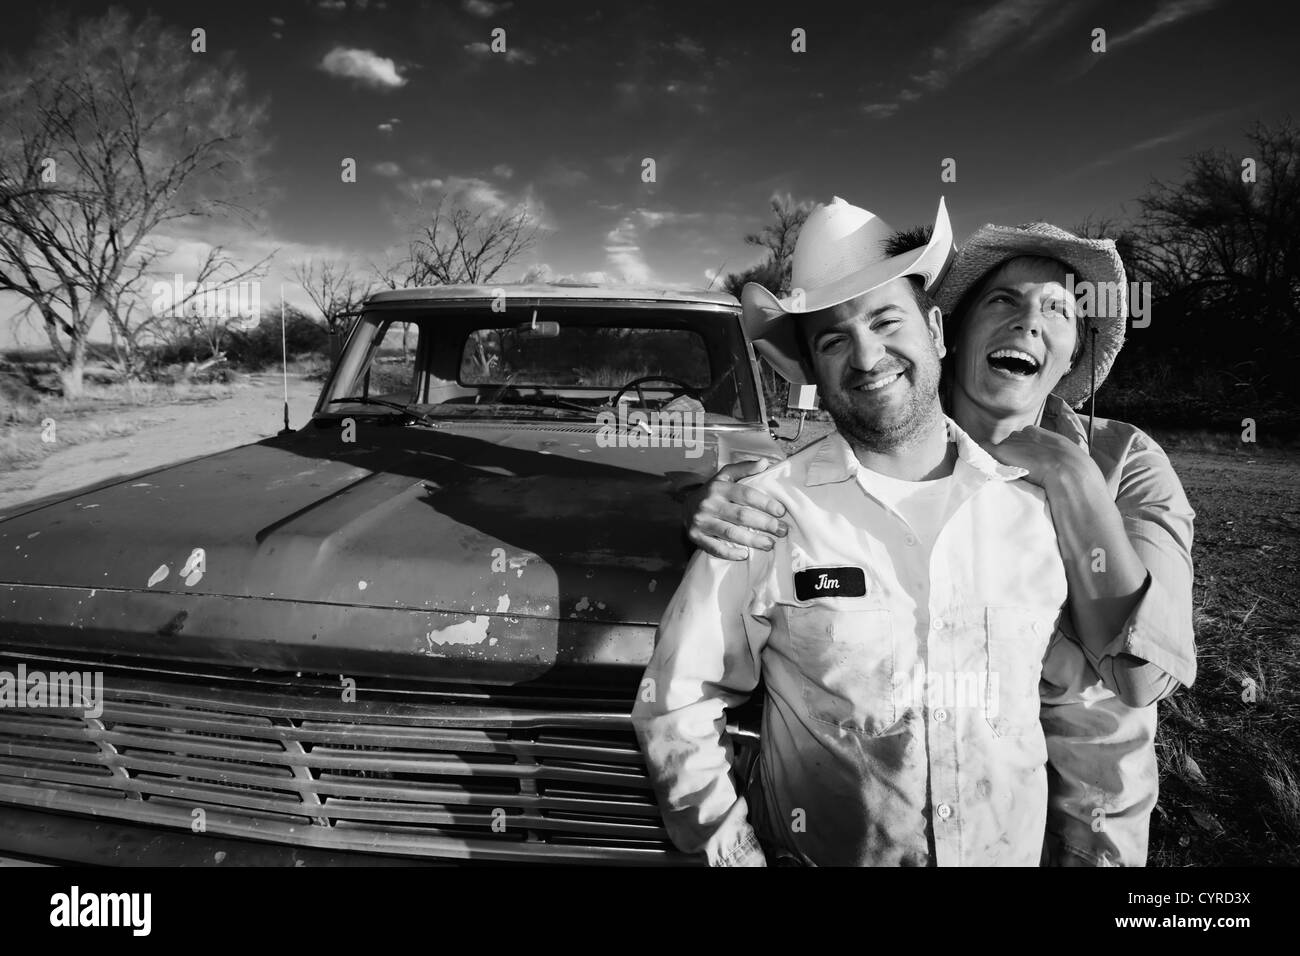 Man and woman in cowboy hats with old truck - Stock Image